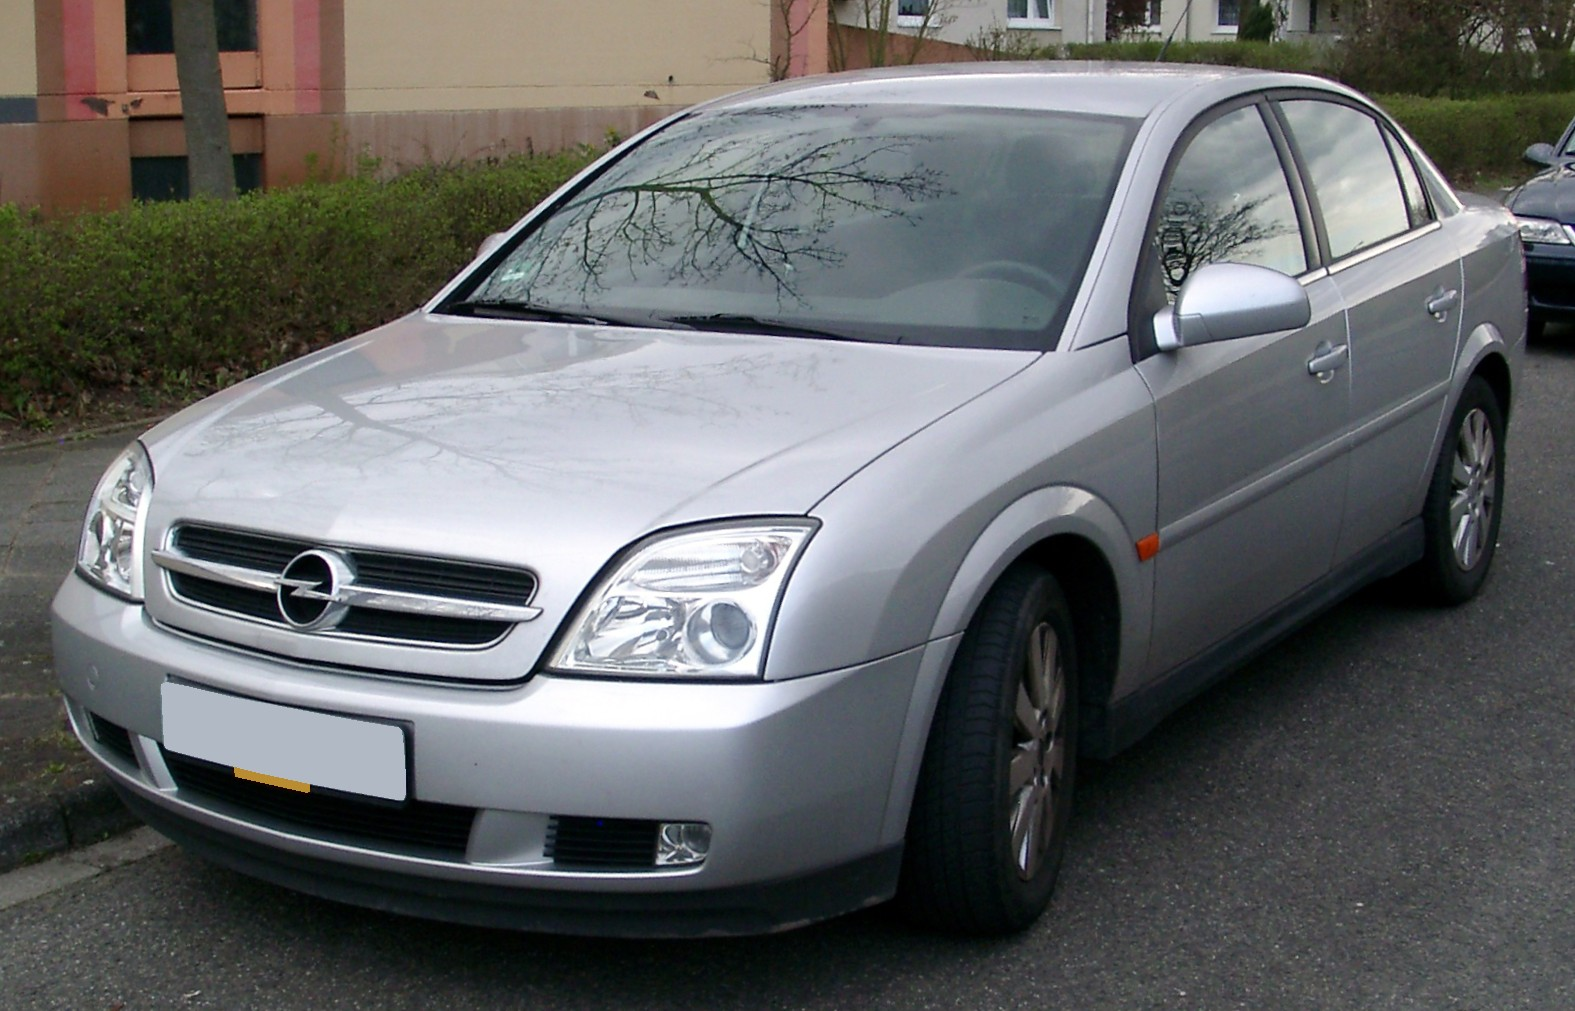 Opel Vectra image #1